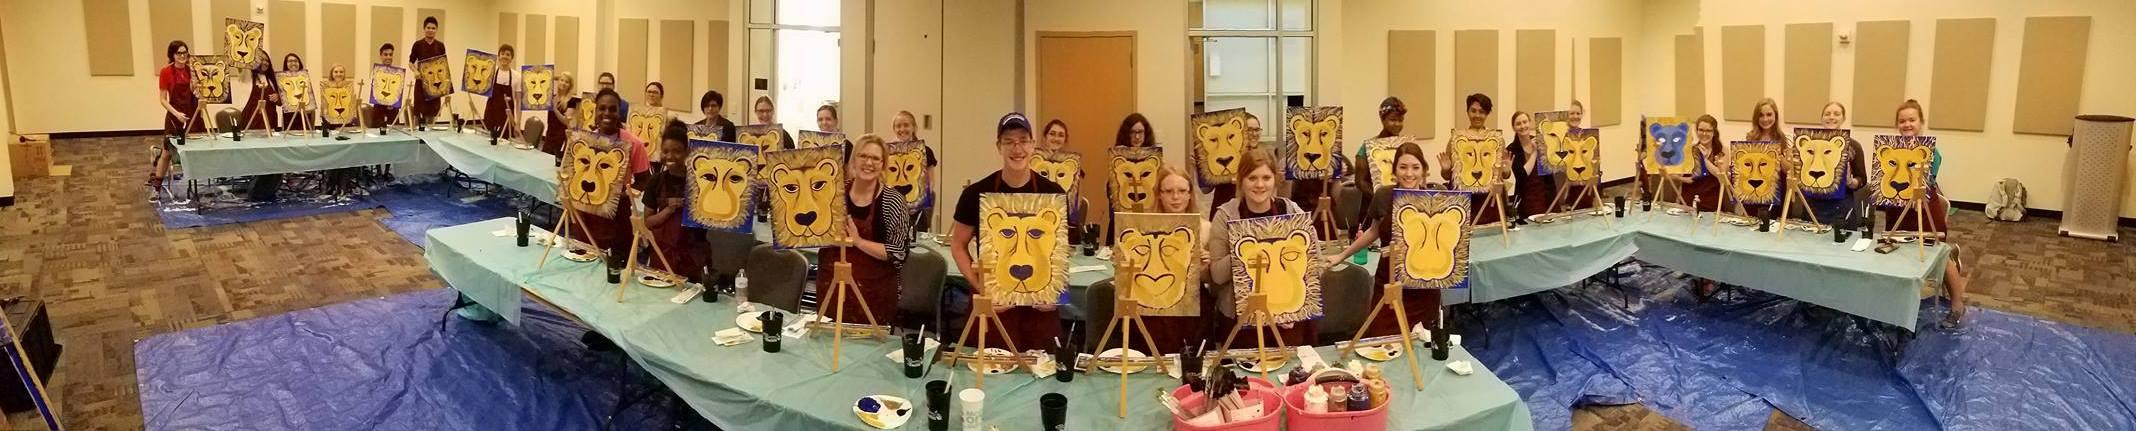 Painting with a twist coupons near me in greenville 8coupons for Painting with a twist greenville sc